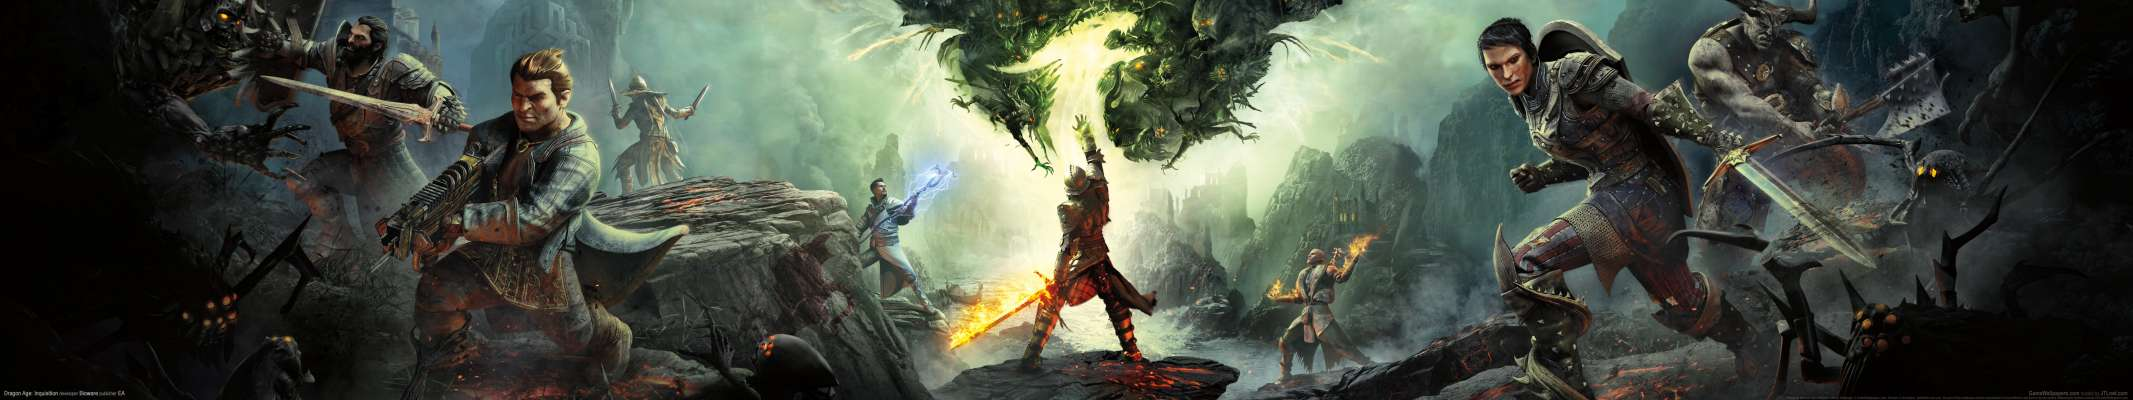 Dragon Age: Inquisition triple screen fondo de escritorio